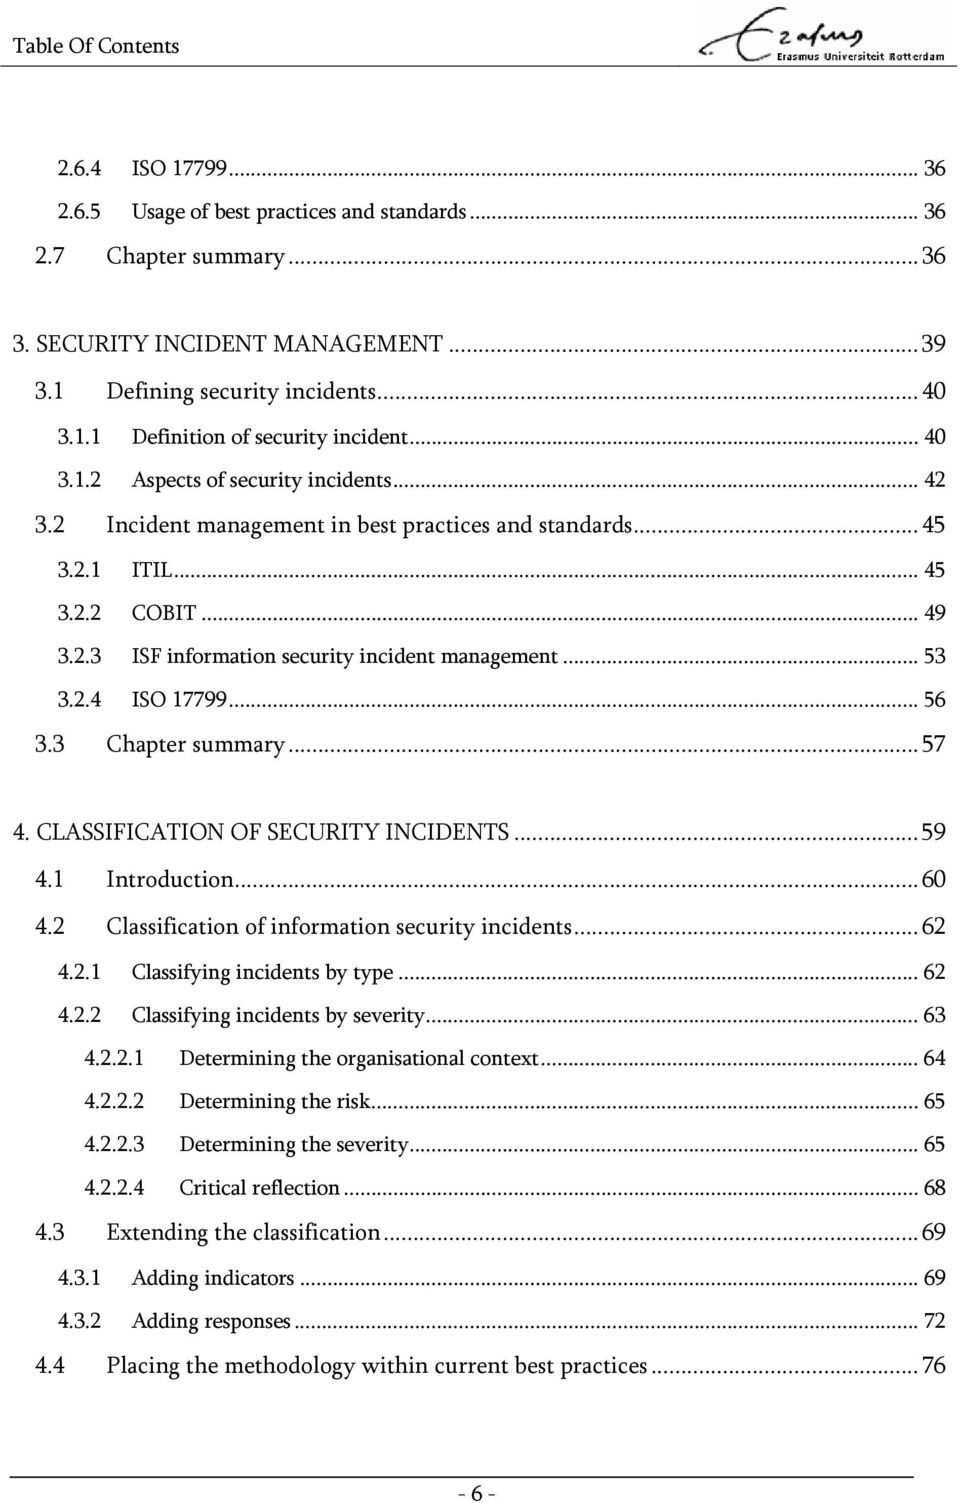 .. 53 3.2.4 ISO 17799... 56 3.3 Chapter summary...57 4. CLASSIFICATION OF SECURITY INCIDENTS...59 4.1 Introduction...60 4.2 Classification of information security incidents...62 4.2.1 Classifying incidents by type.